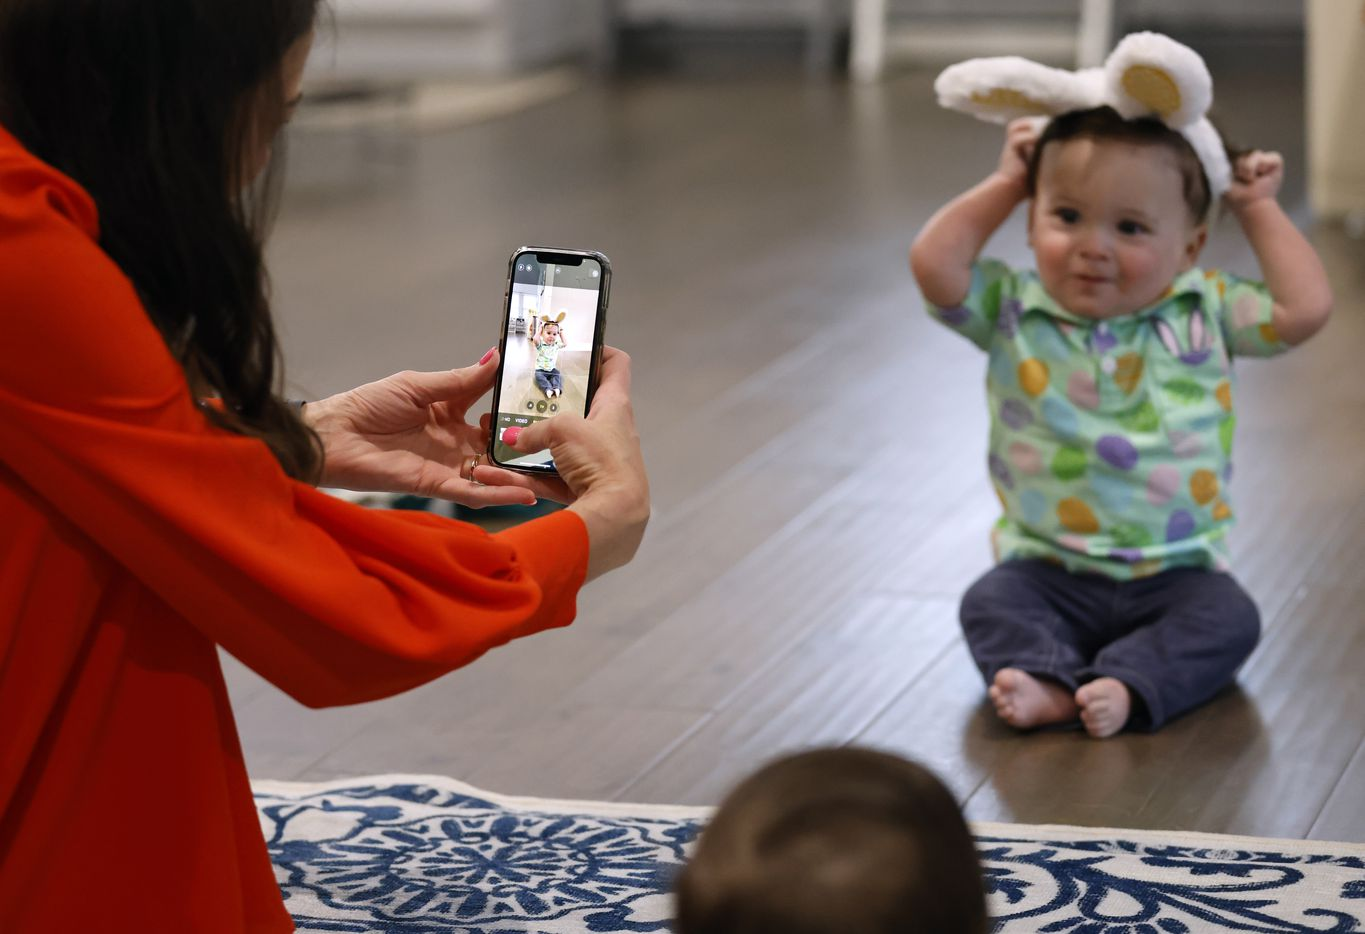 Jenny Marr takes a photo of Hudson Marr with bunny ears on after they went through items received in their Easter basket at their home on Sunday, April 4, 2021 in Grapevine, Texas.